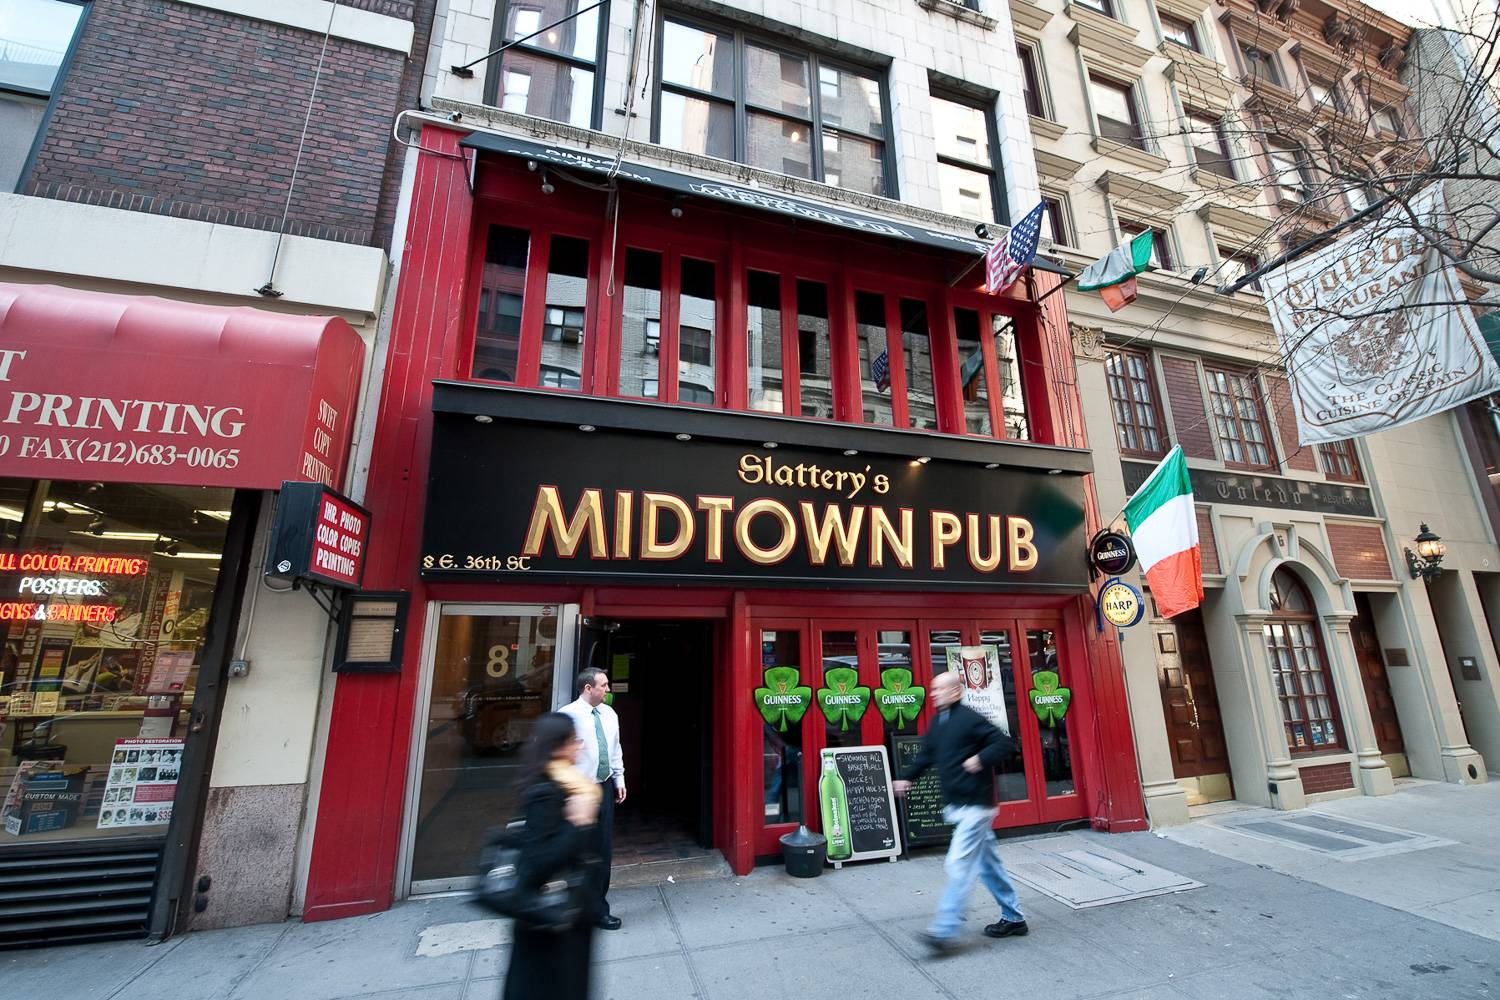 Immagine di un Irish pub a Midtown Manhattan decorato con quadrifogli per San Patrizio